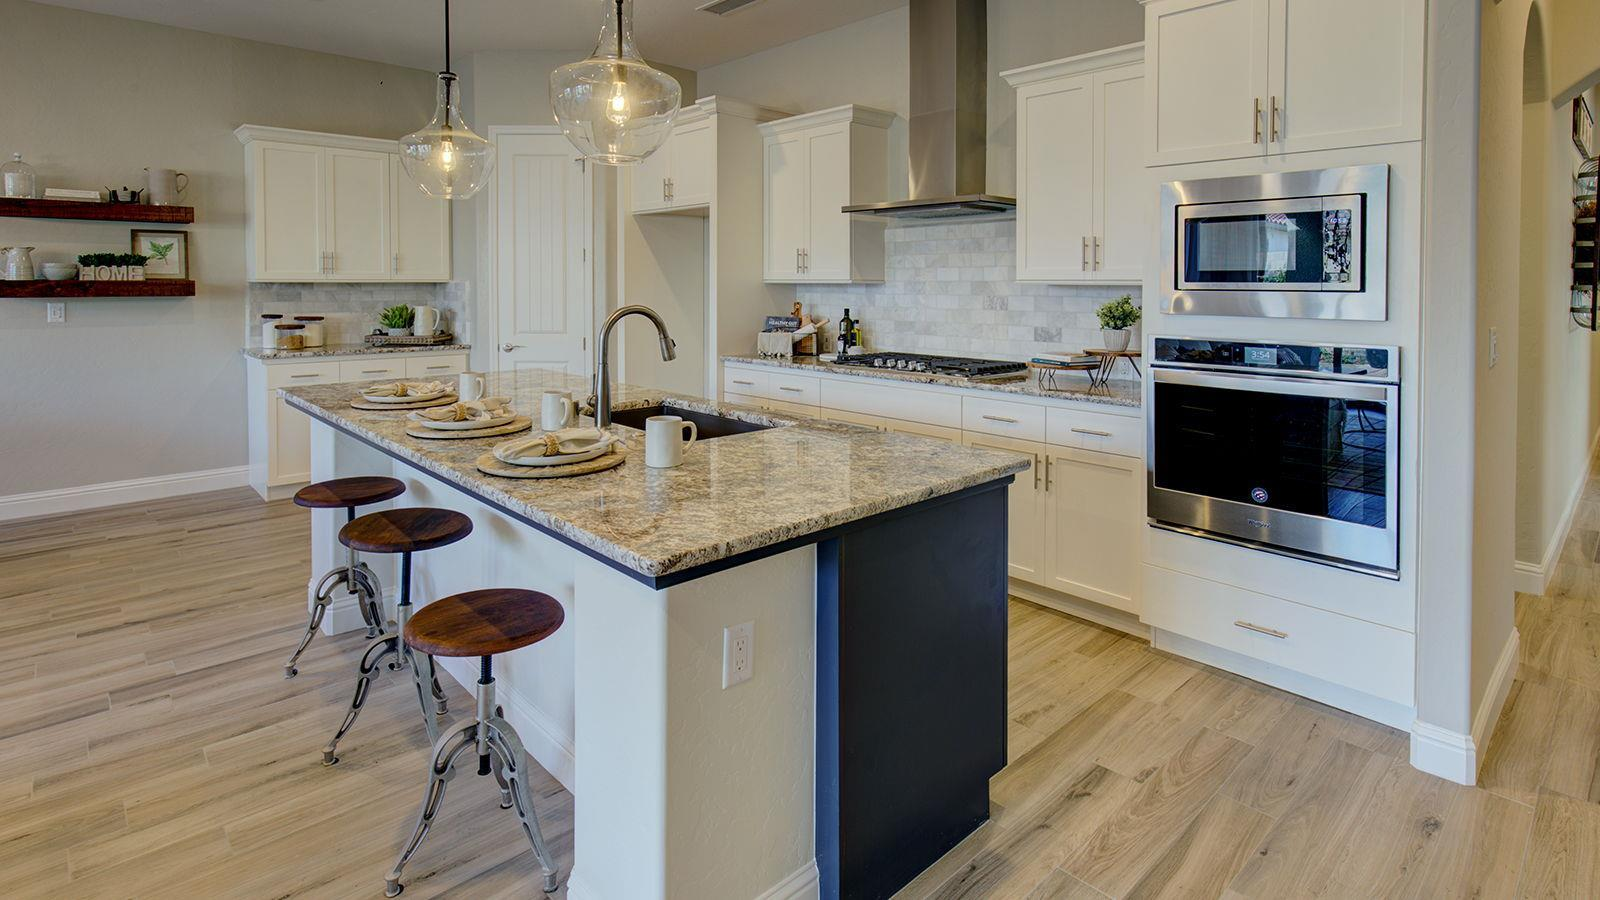 Kitchen featured in the Pasatiempo By Granville Homes  in Fresno, CA